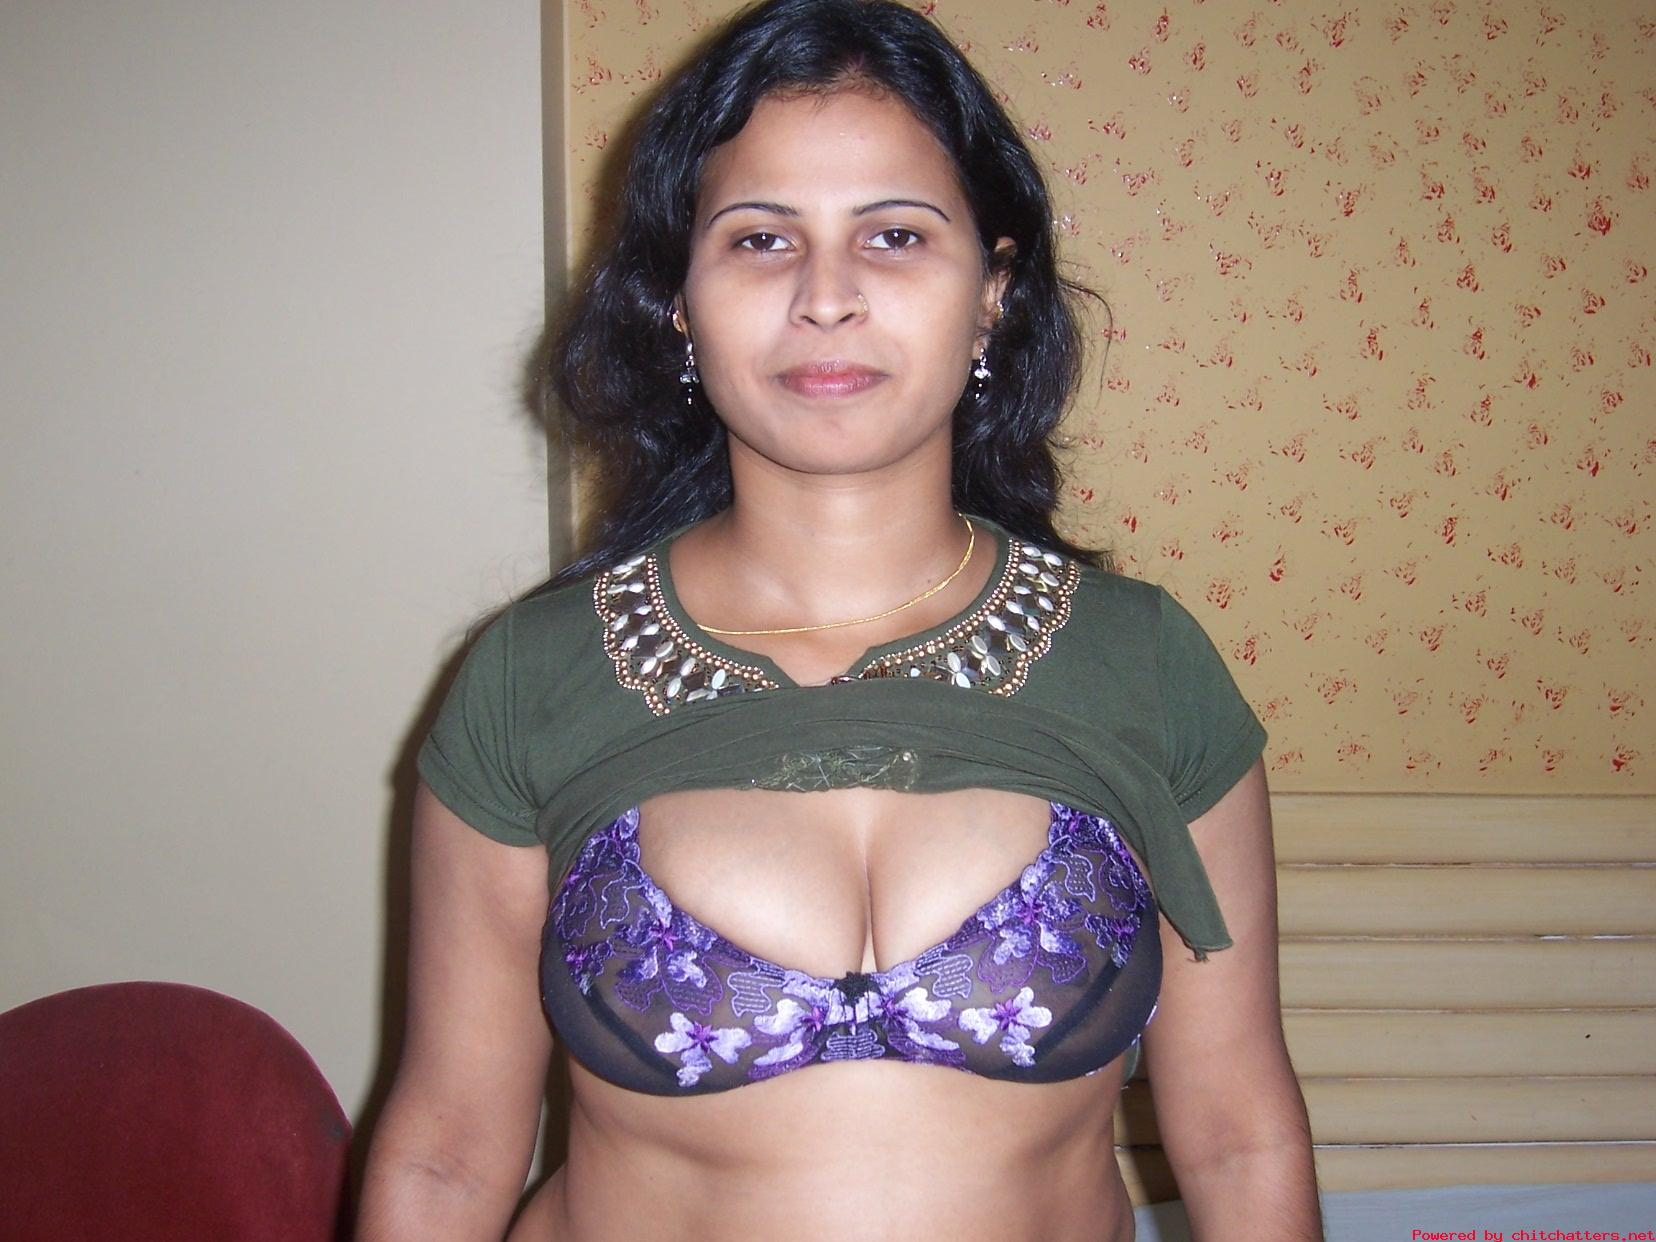 Tamil girl sex with underwear and bra sex